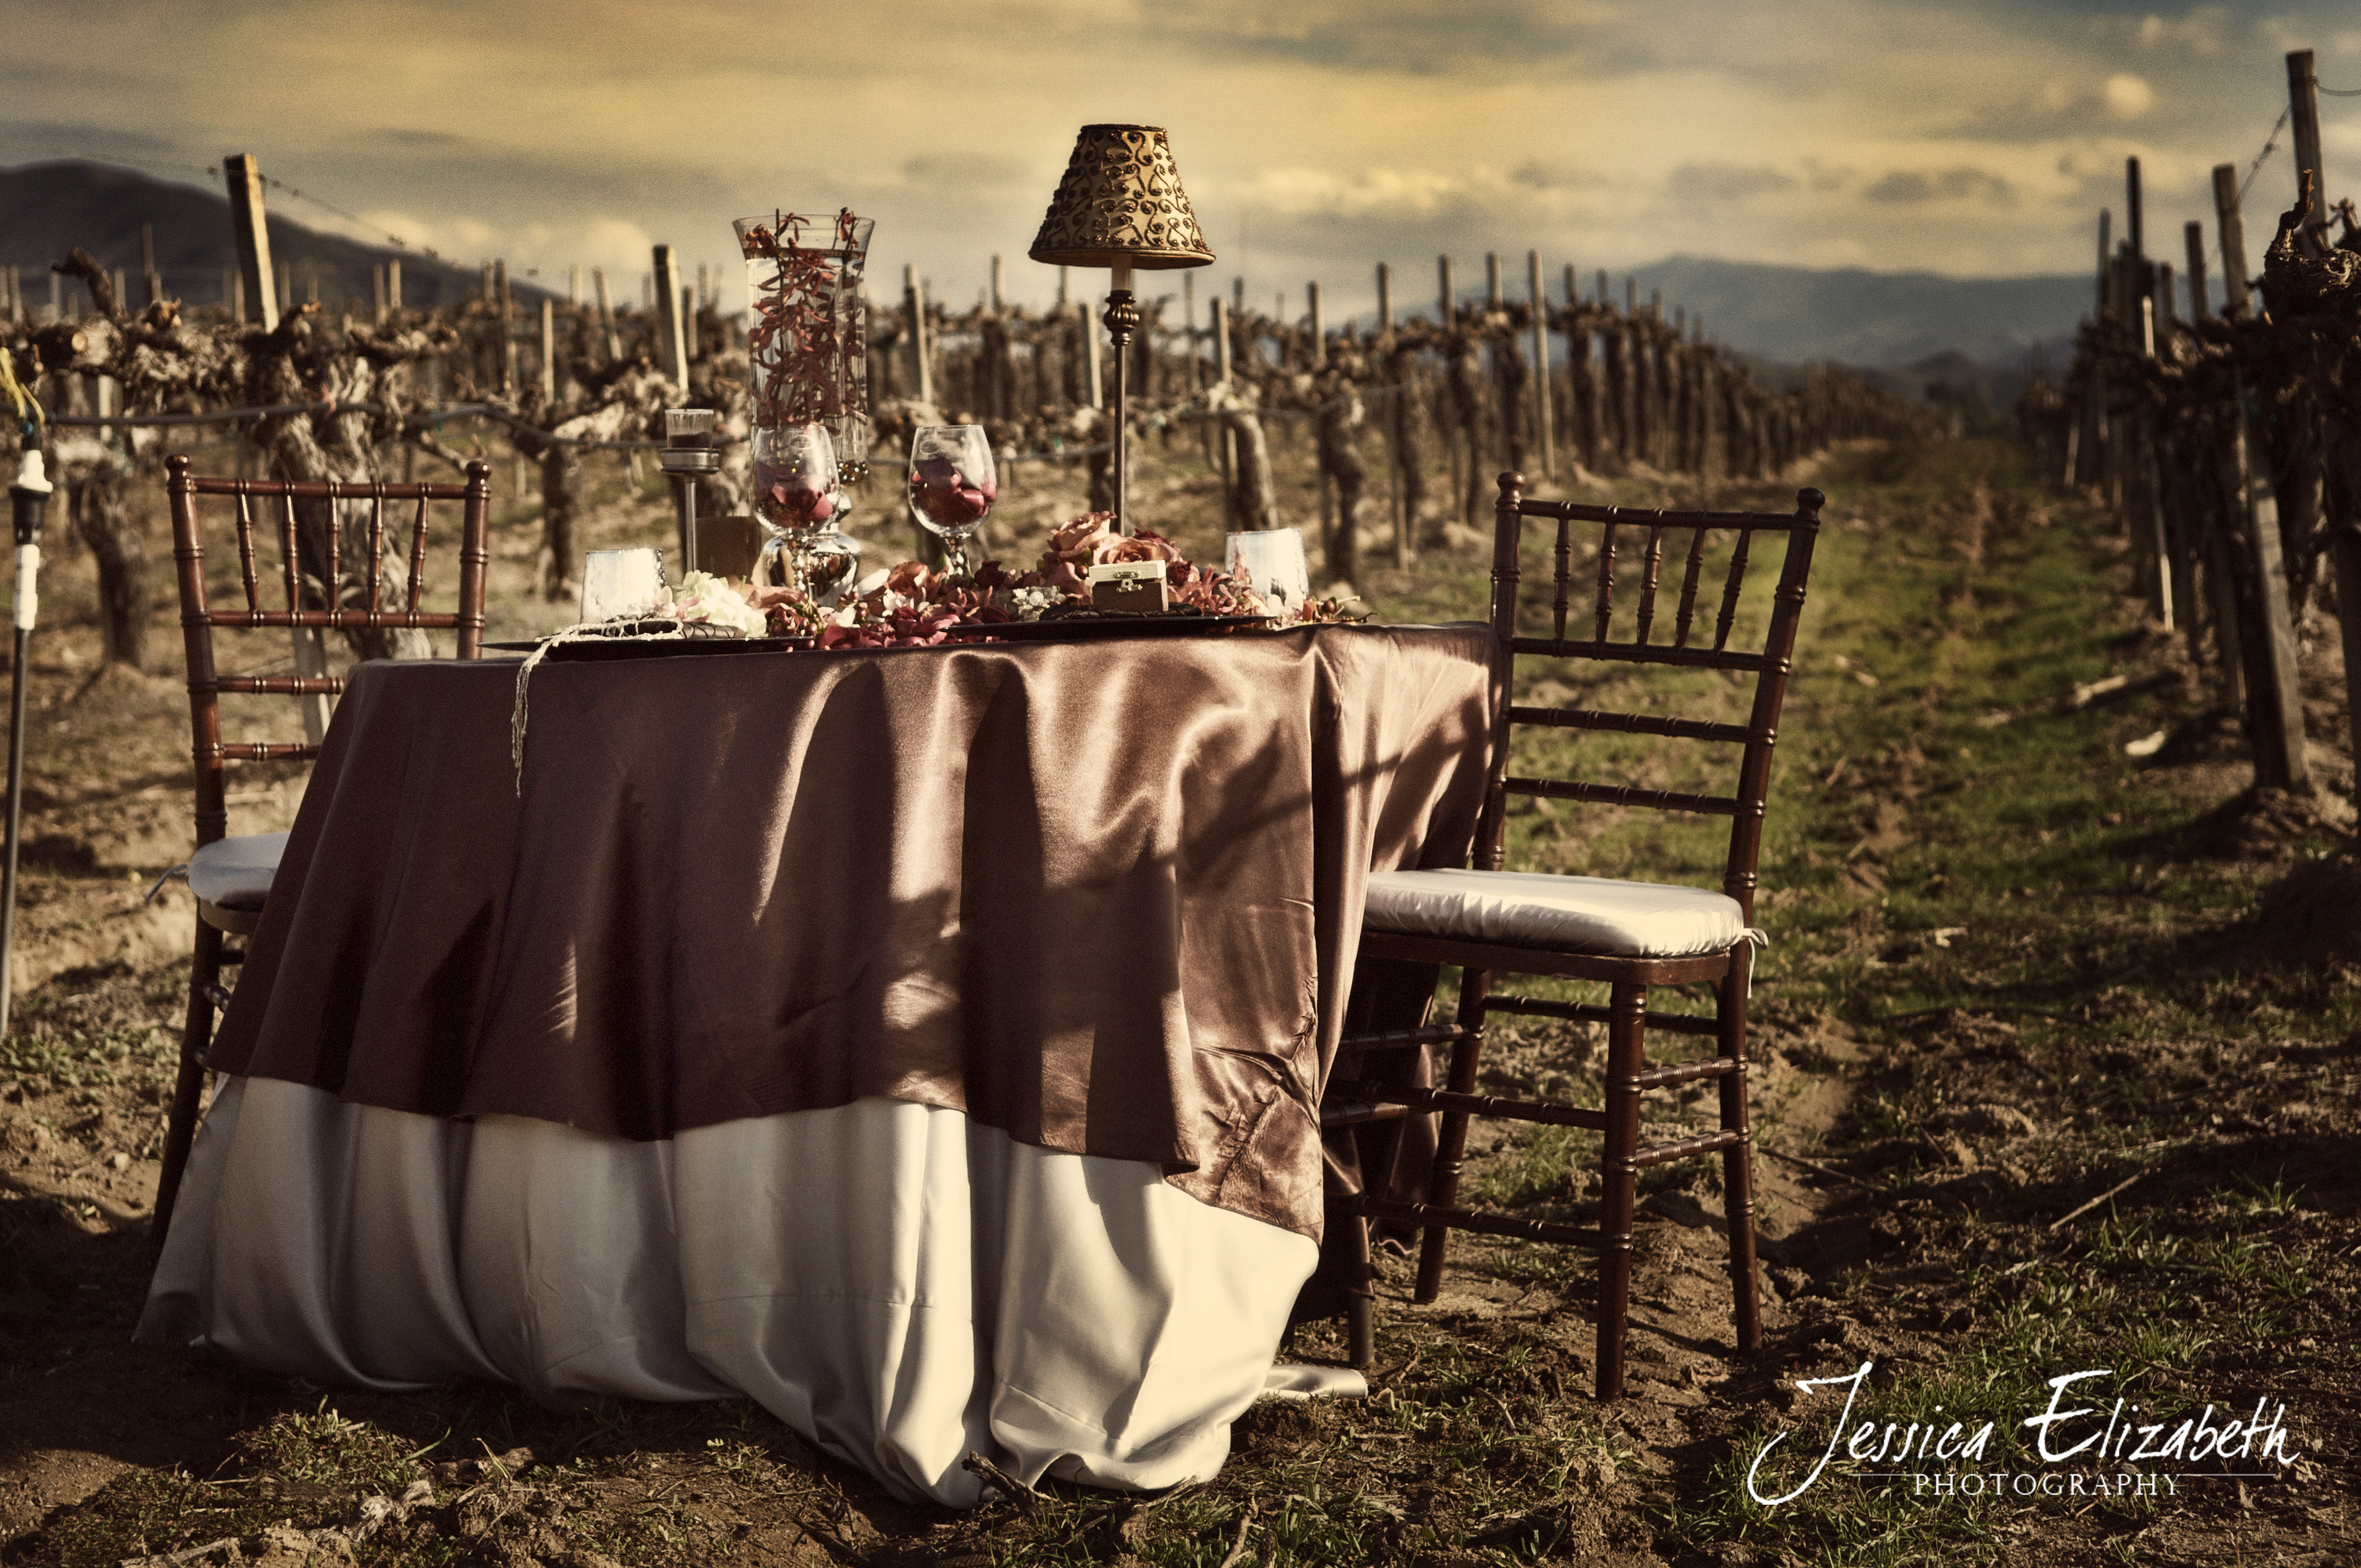 Rustic-luxe-wedding-inspiration-elegant-glam-wedding-theme-tablescape.original